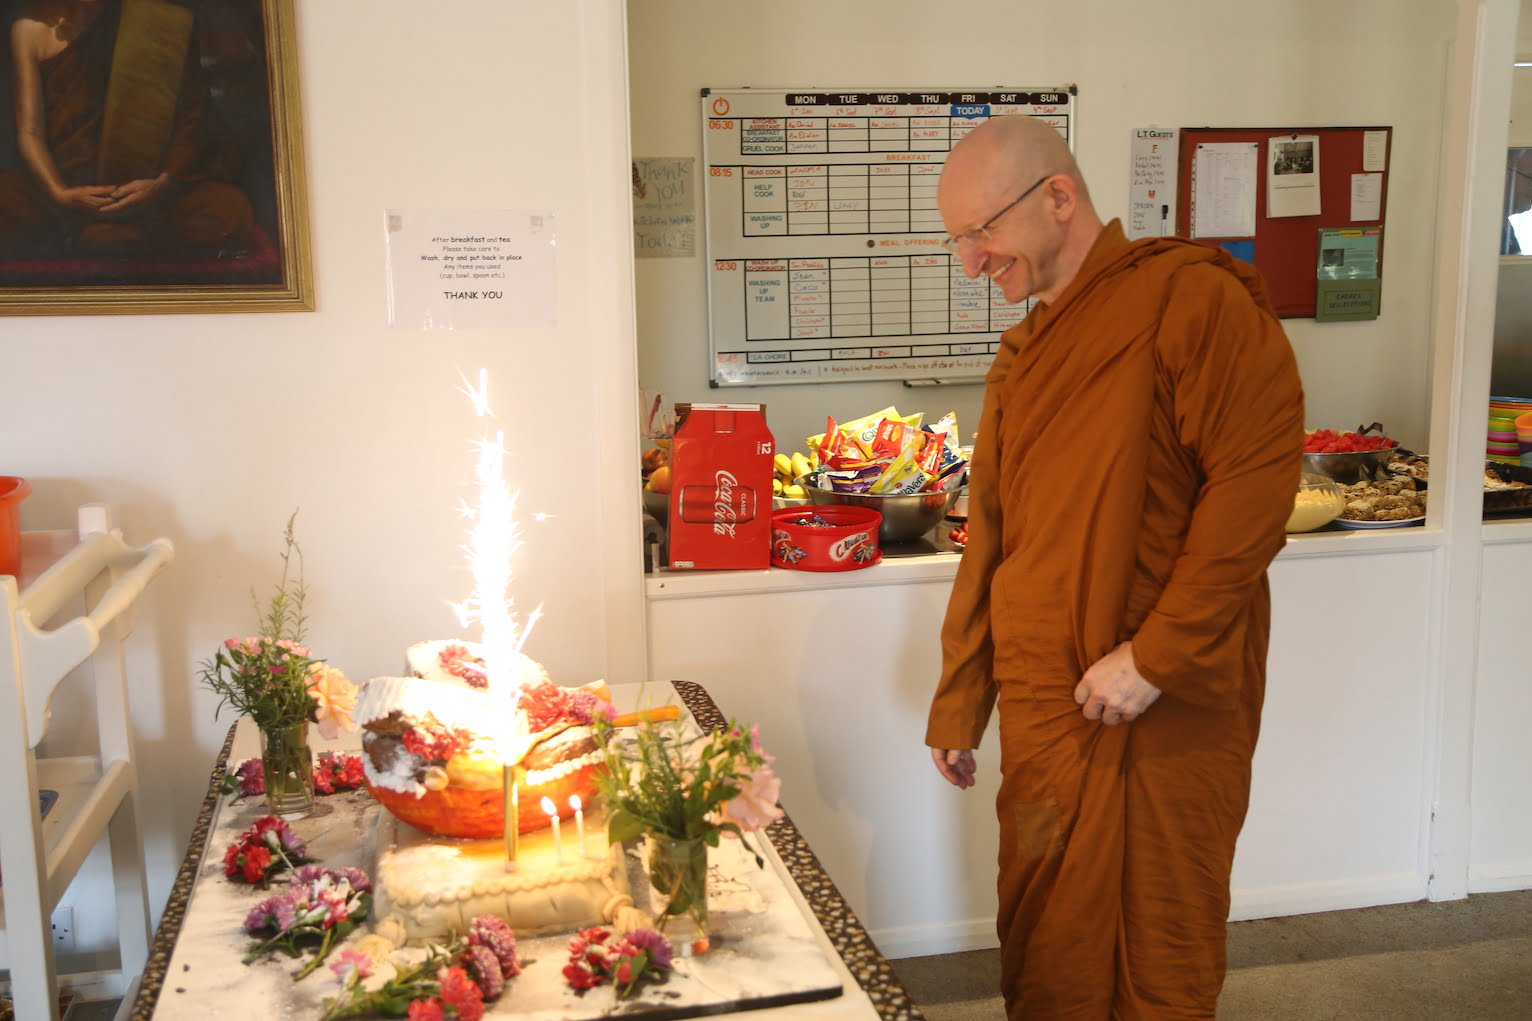 2016.09.02 Ajahn Amaro 60th Birthday